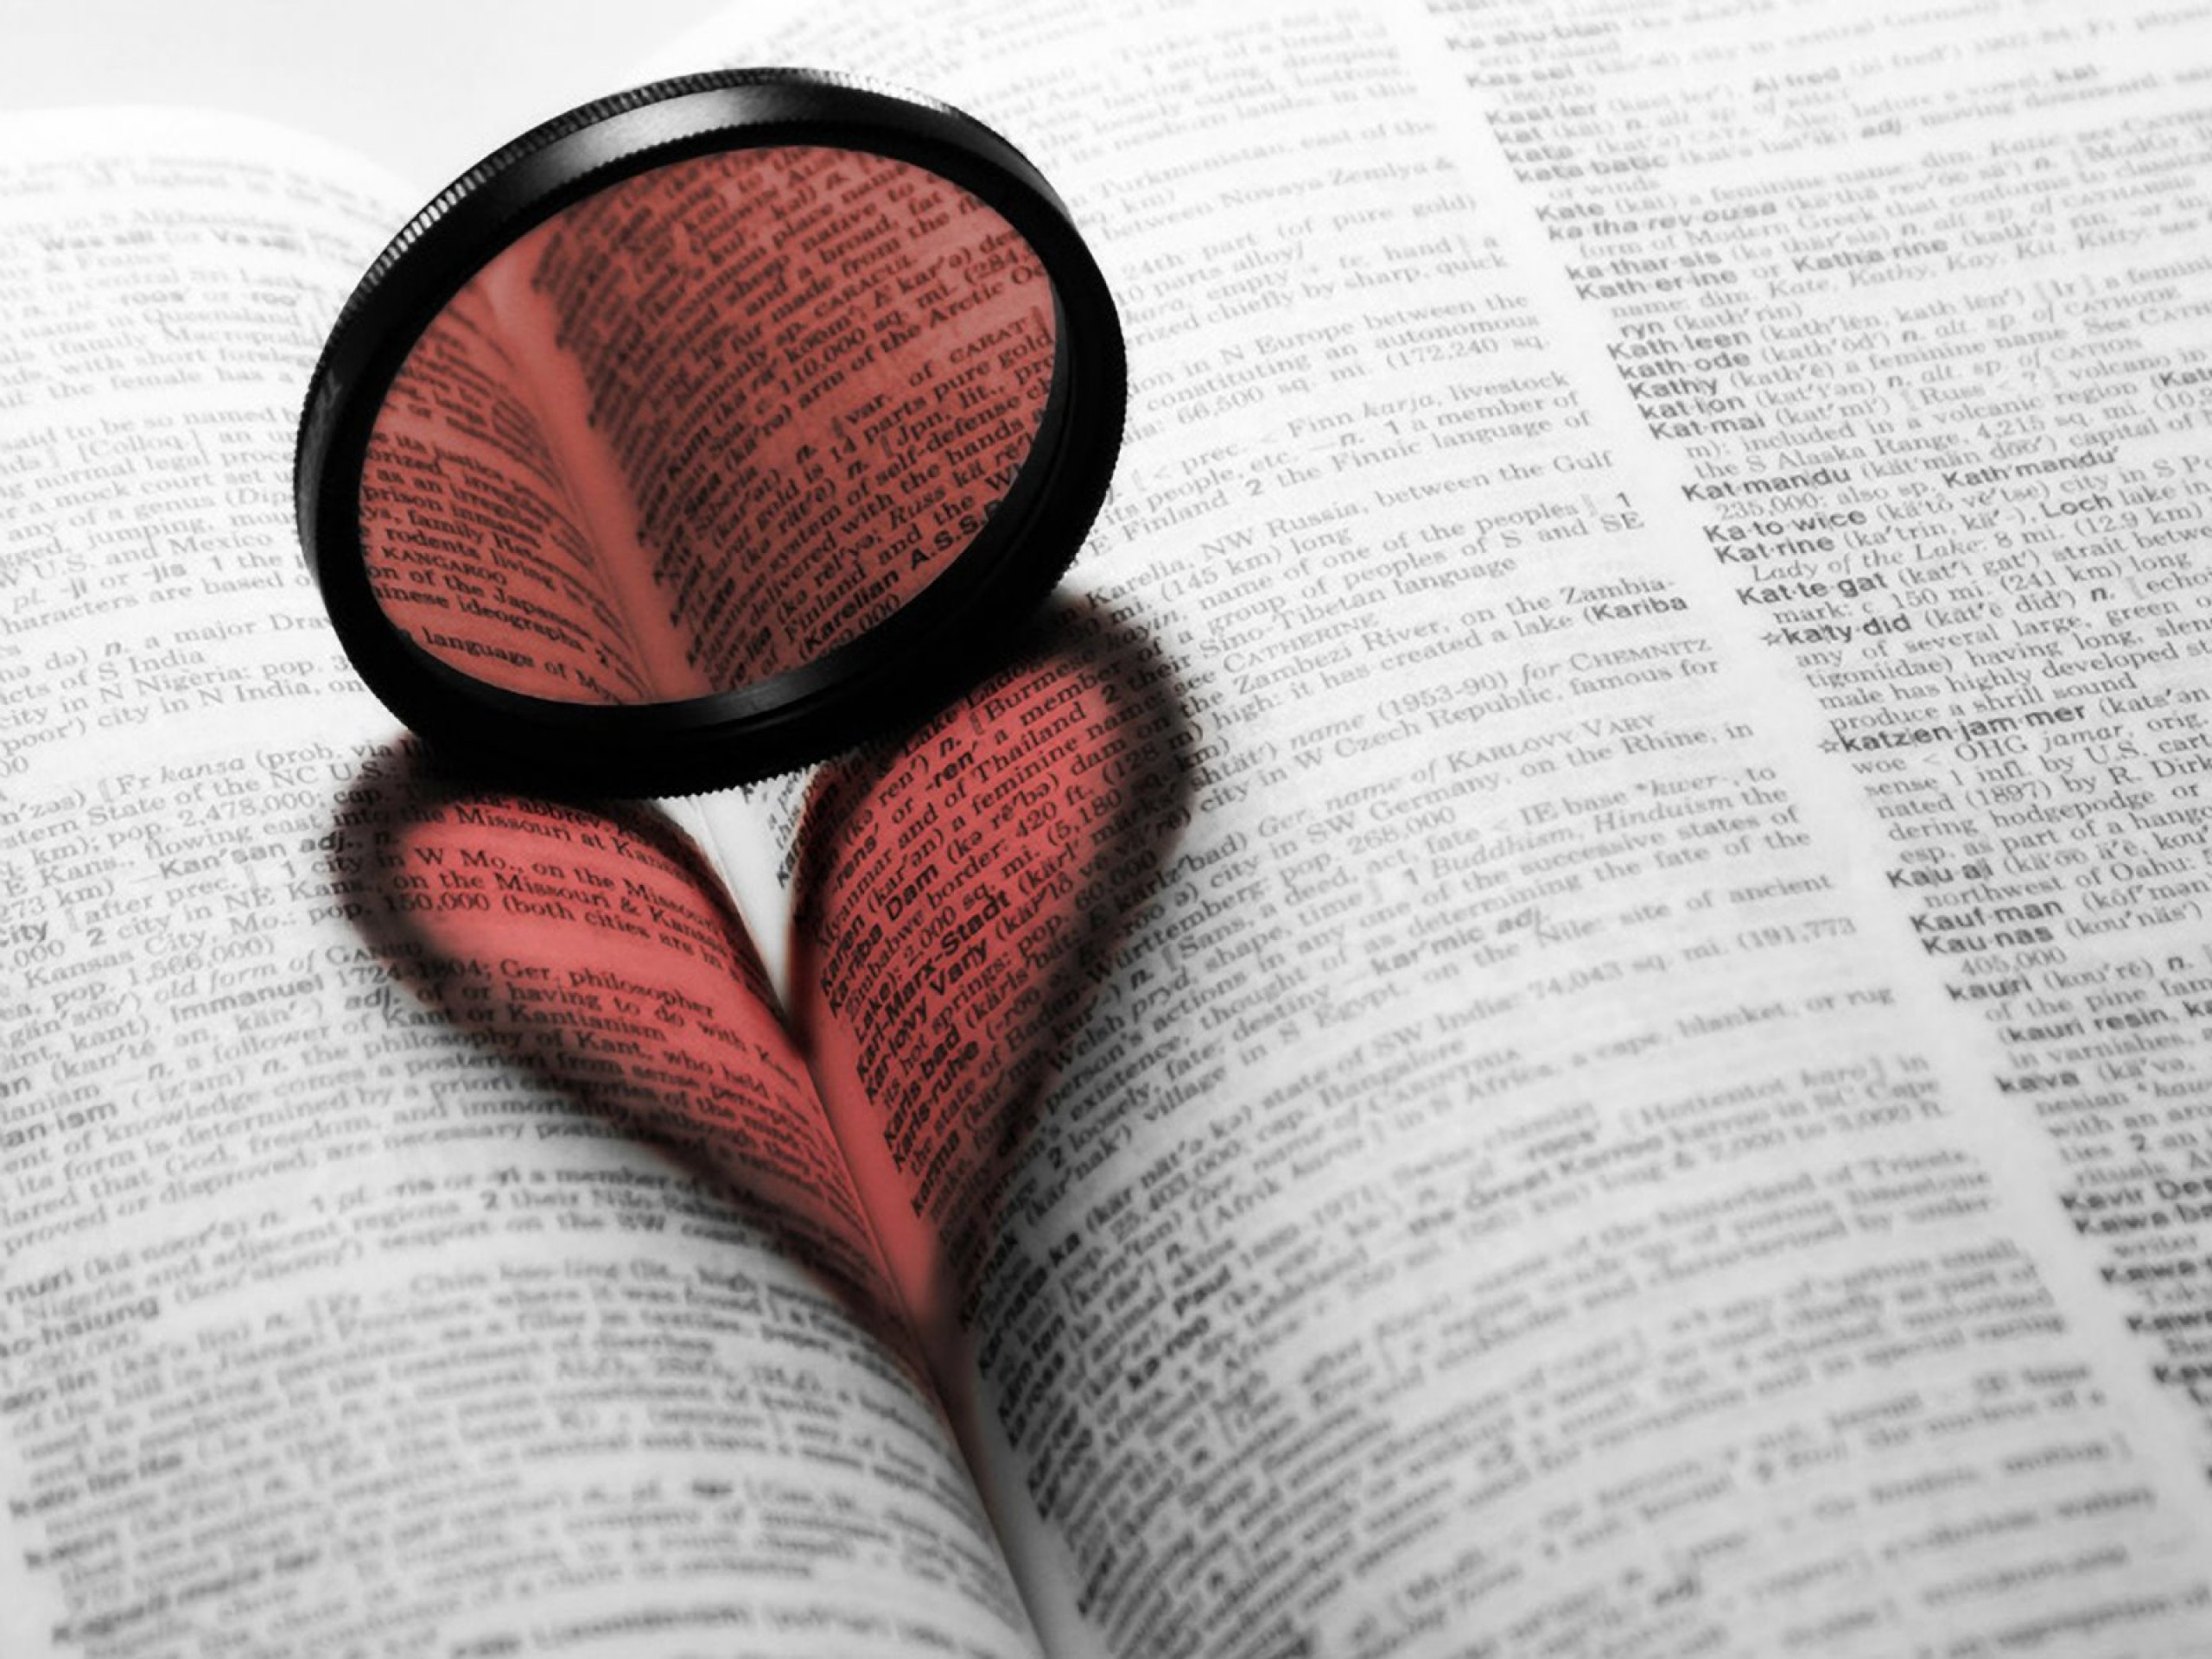 book-and-heart-book-heart-love-2560x1920